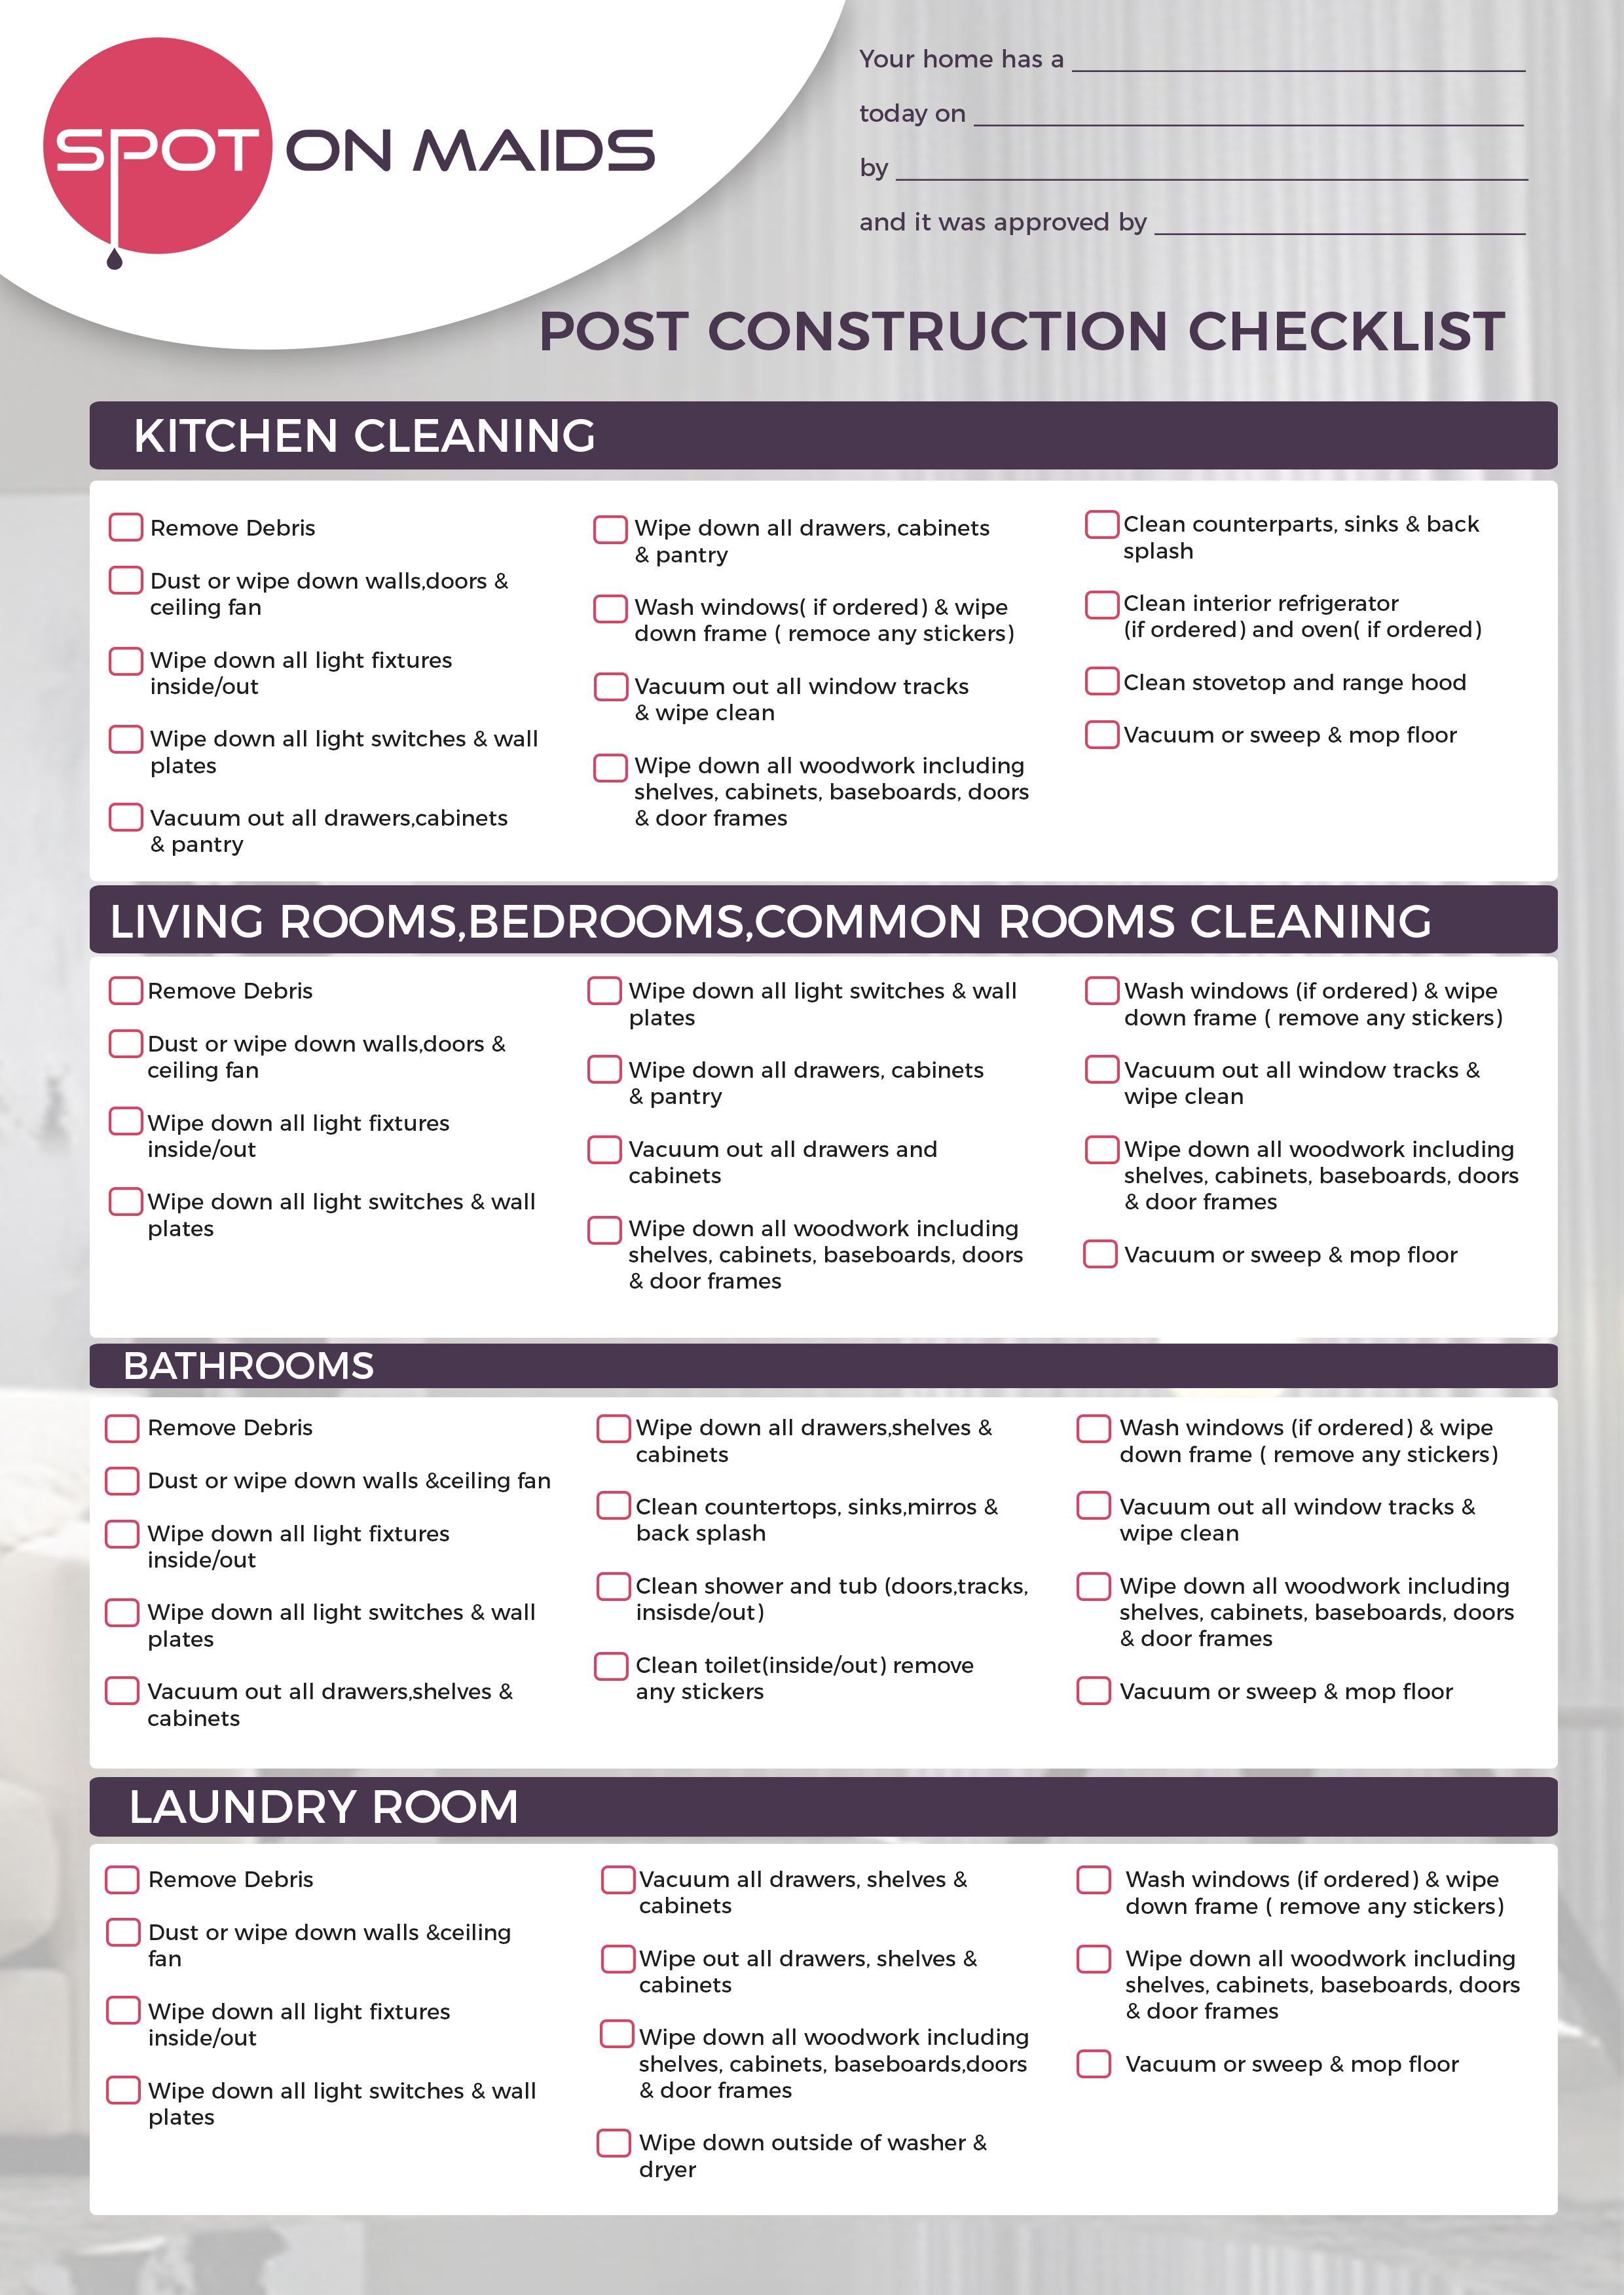 Cleaning Checklist Cleaning Checklist Construction Cleaning House Cleaning Checklist